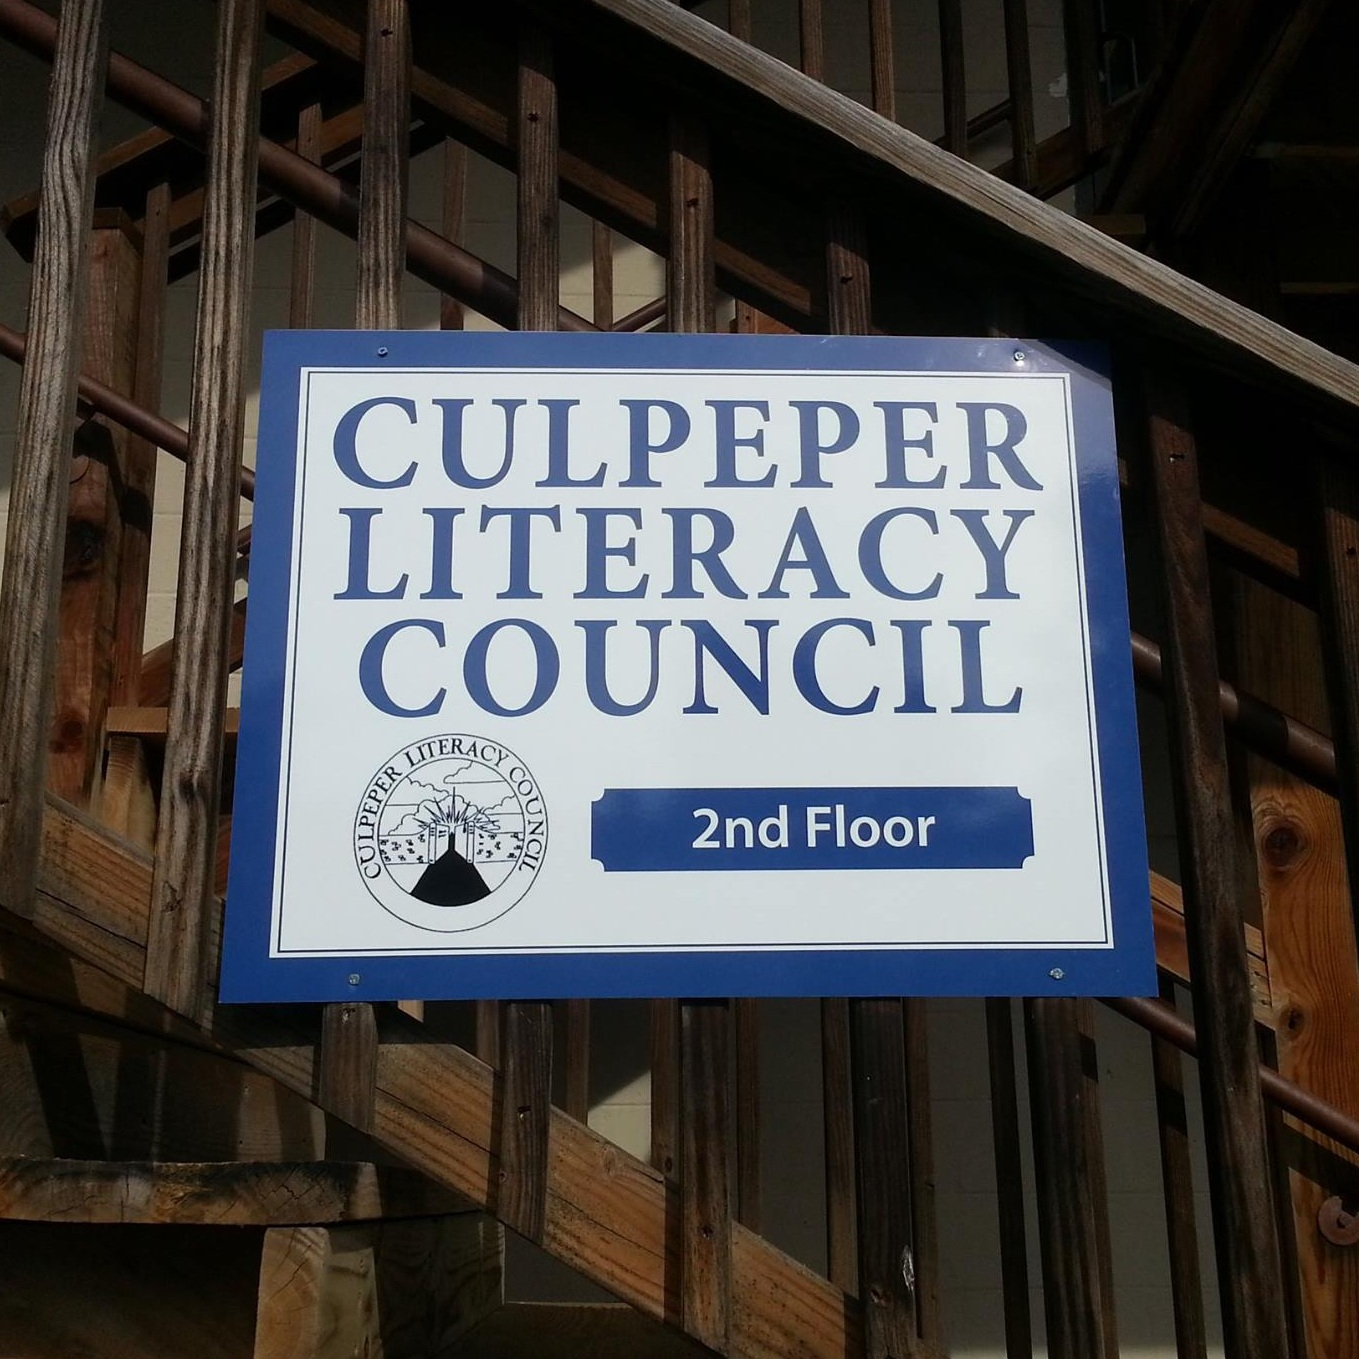 Culpeper+Literacy+Council.jpg